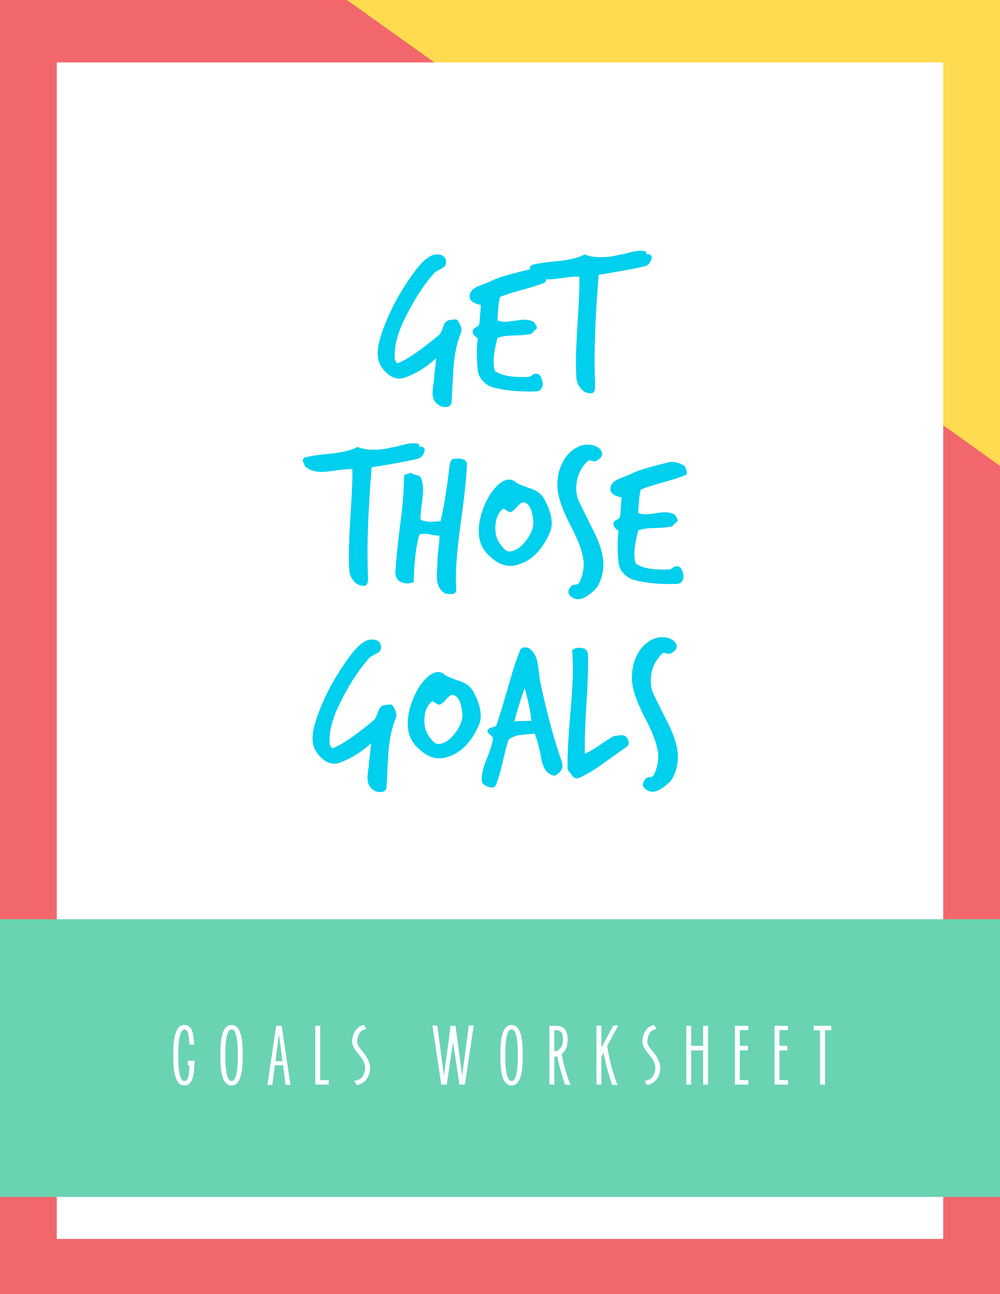 Bold & Pop Get Those Goals Worksheet